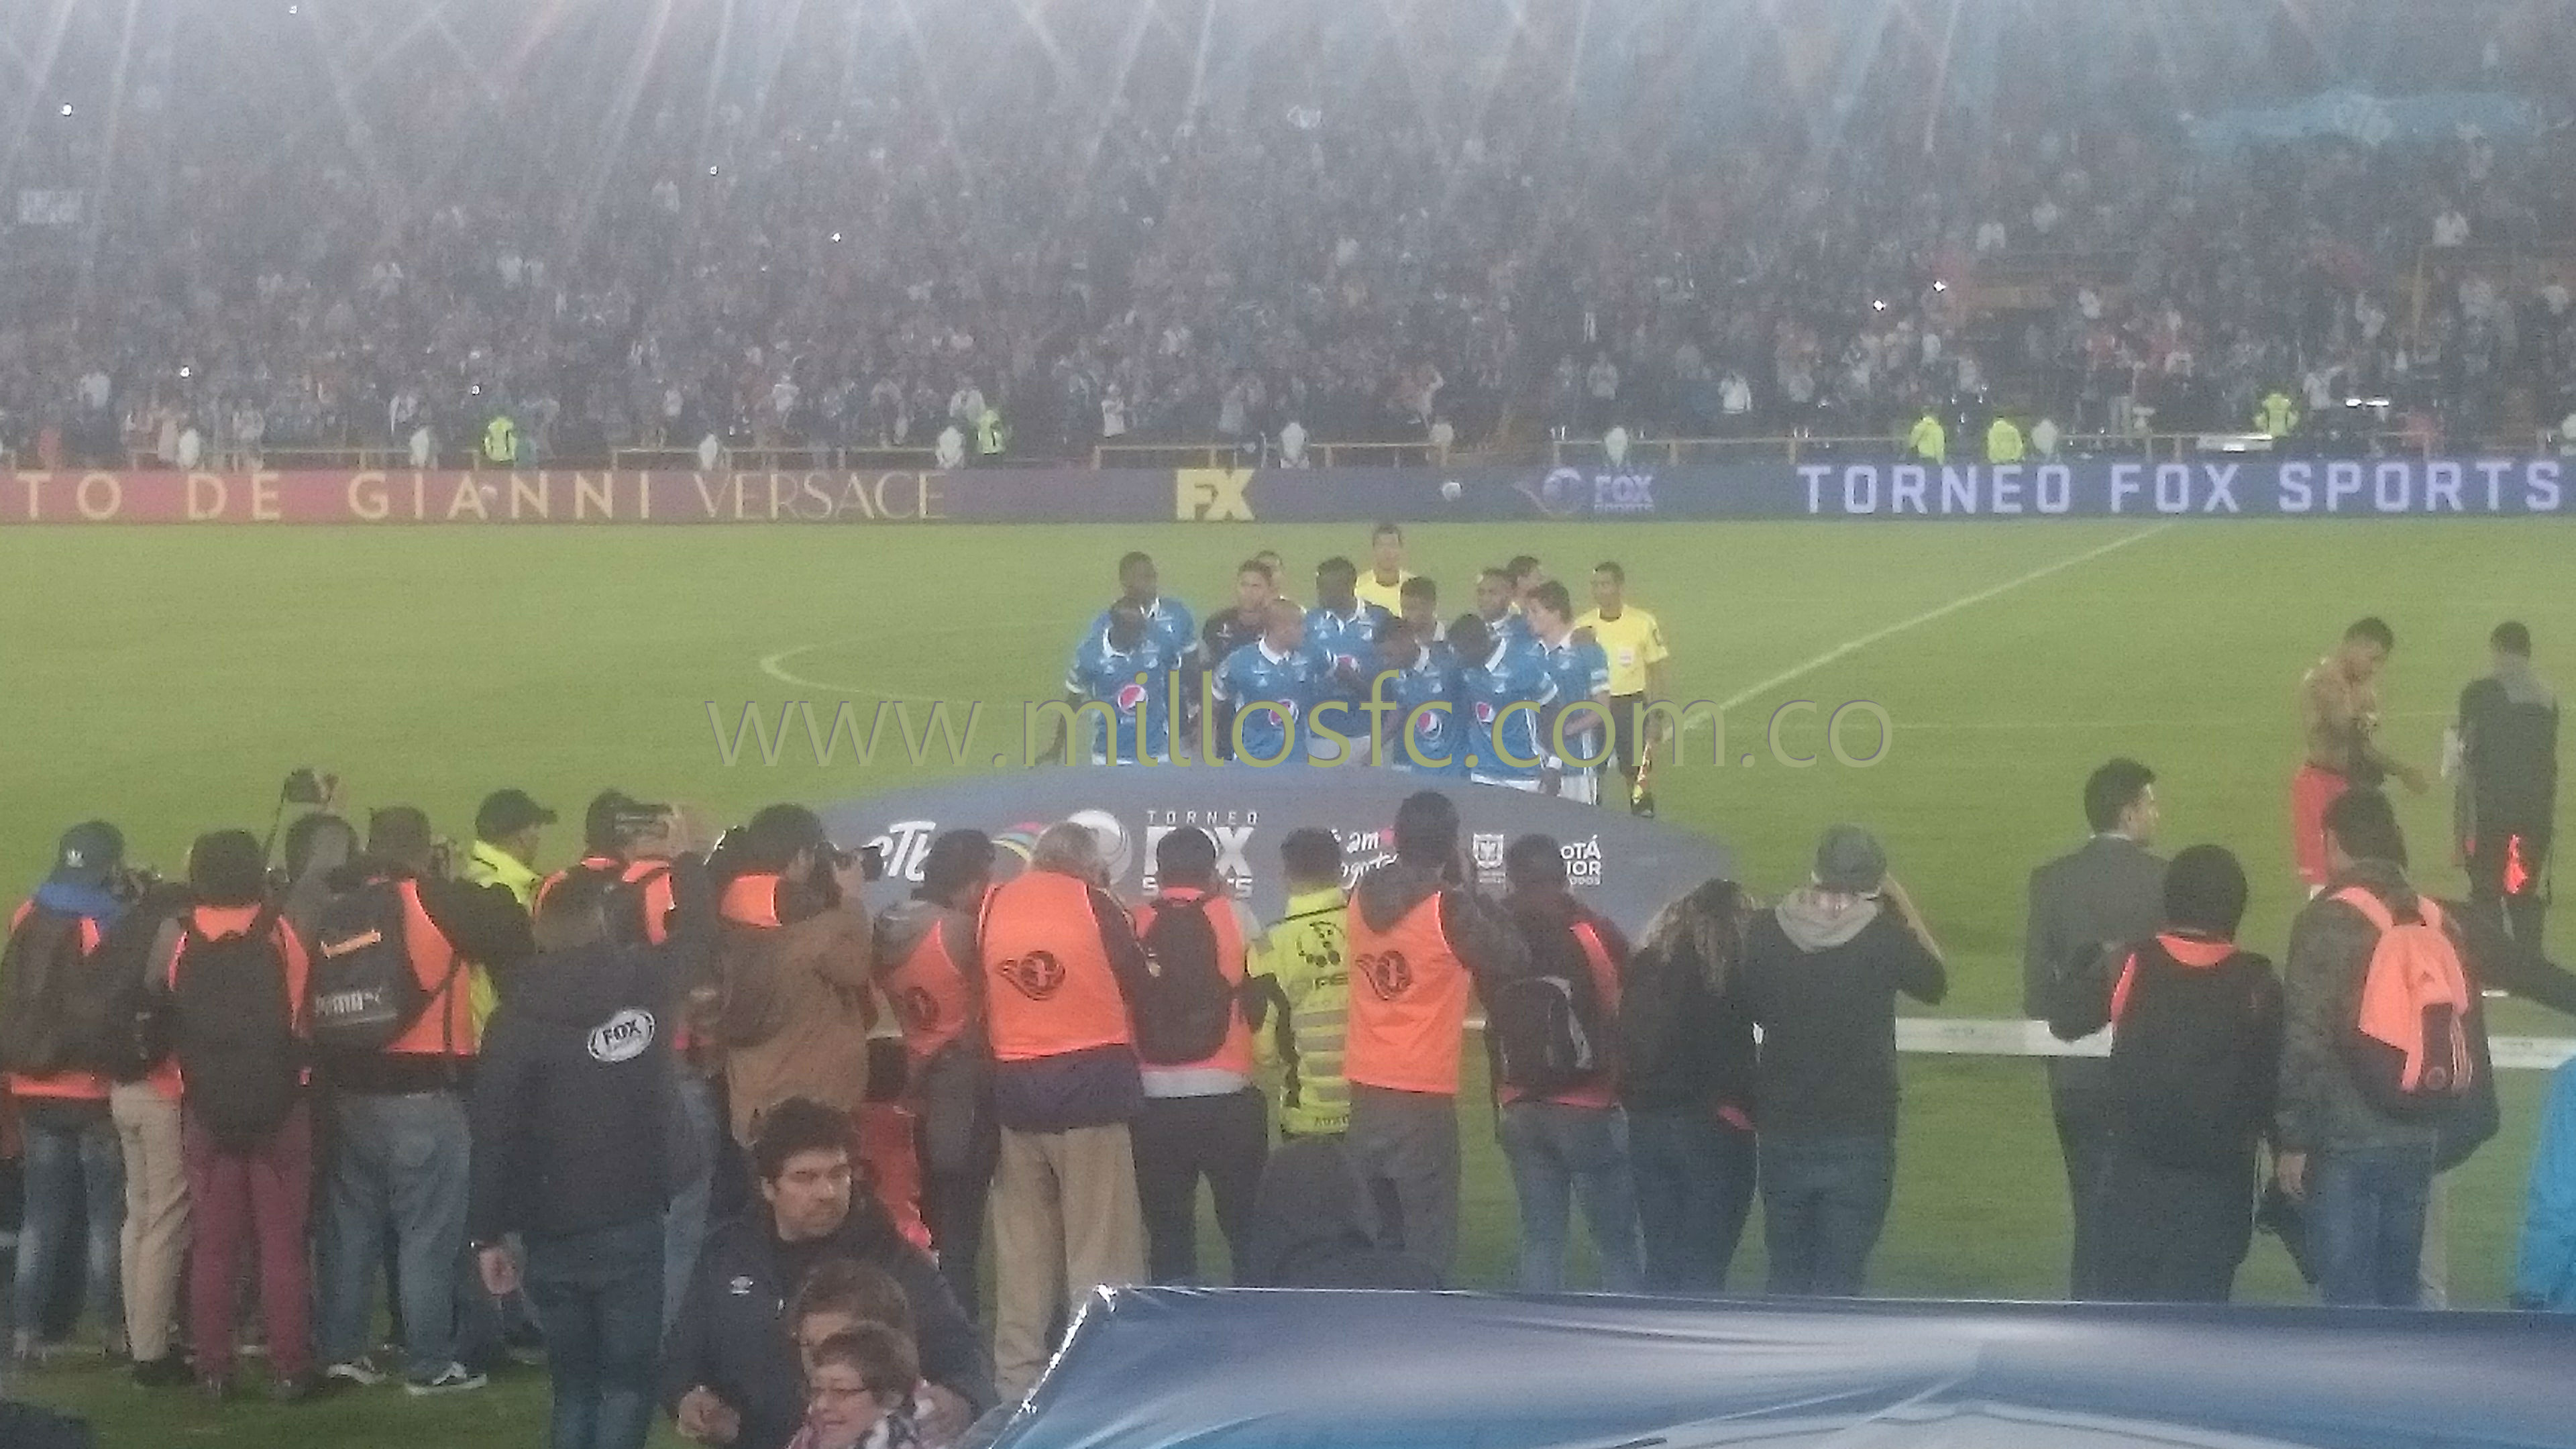 Titular de Millos Torneo Fox Sports